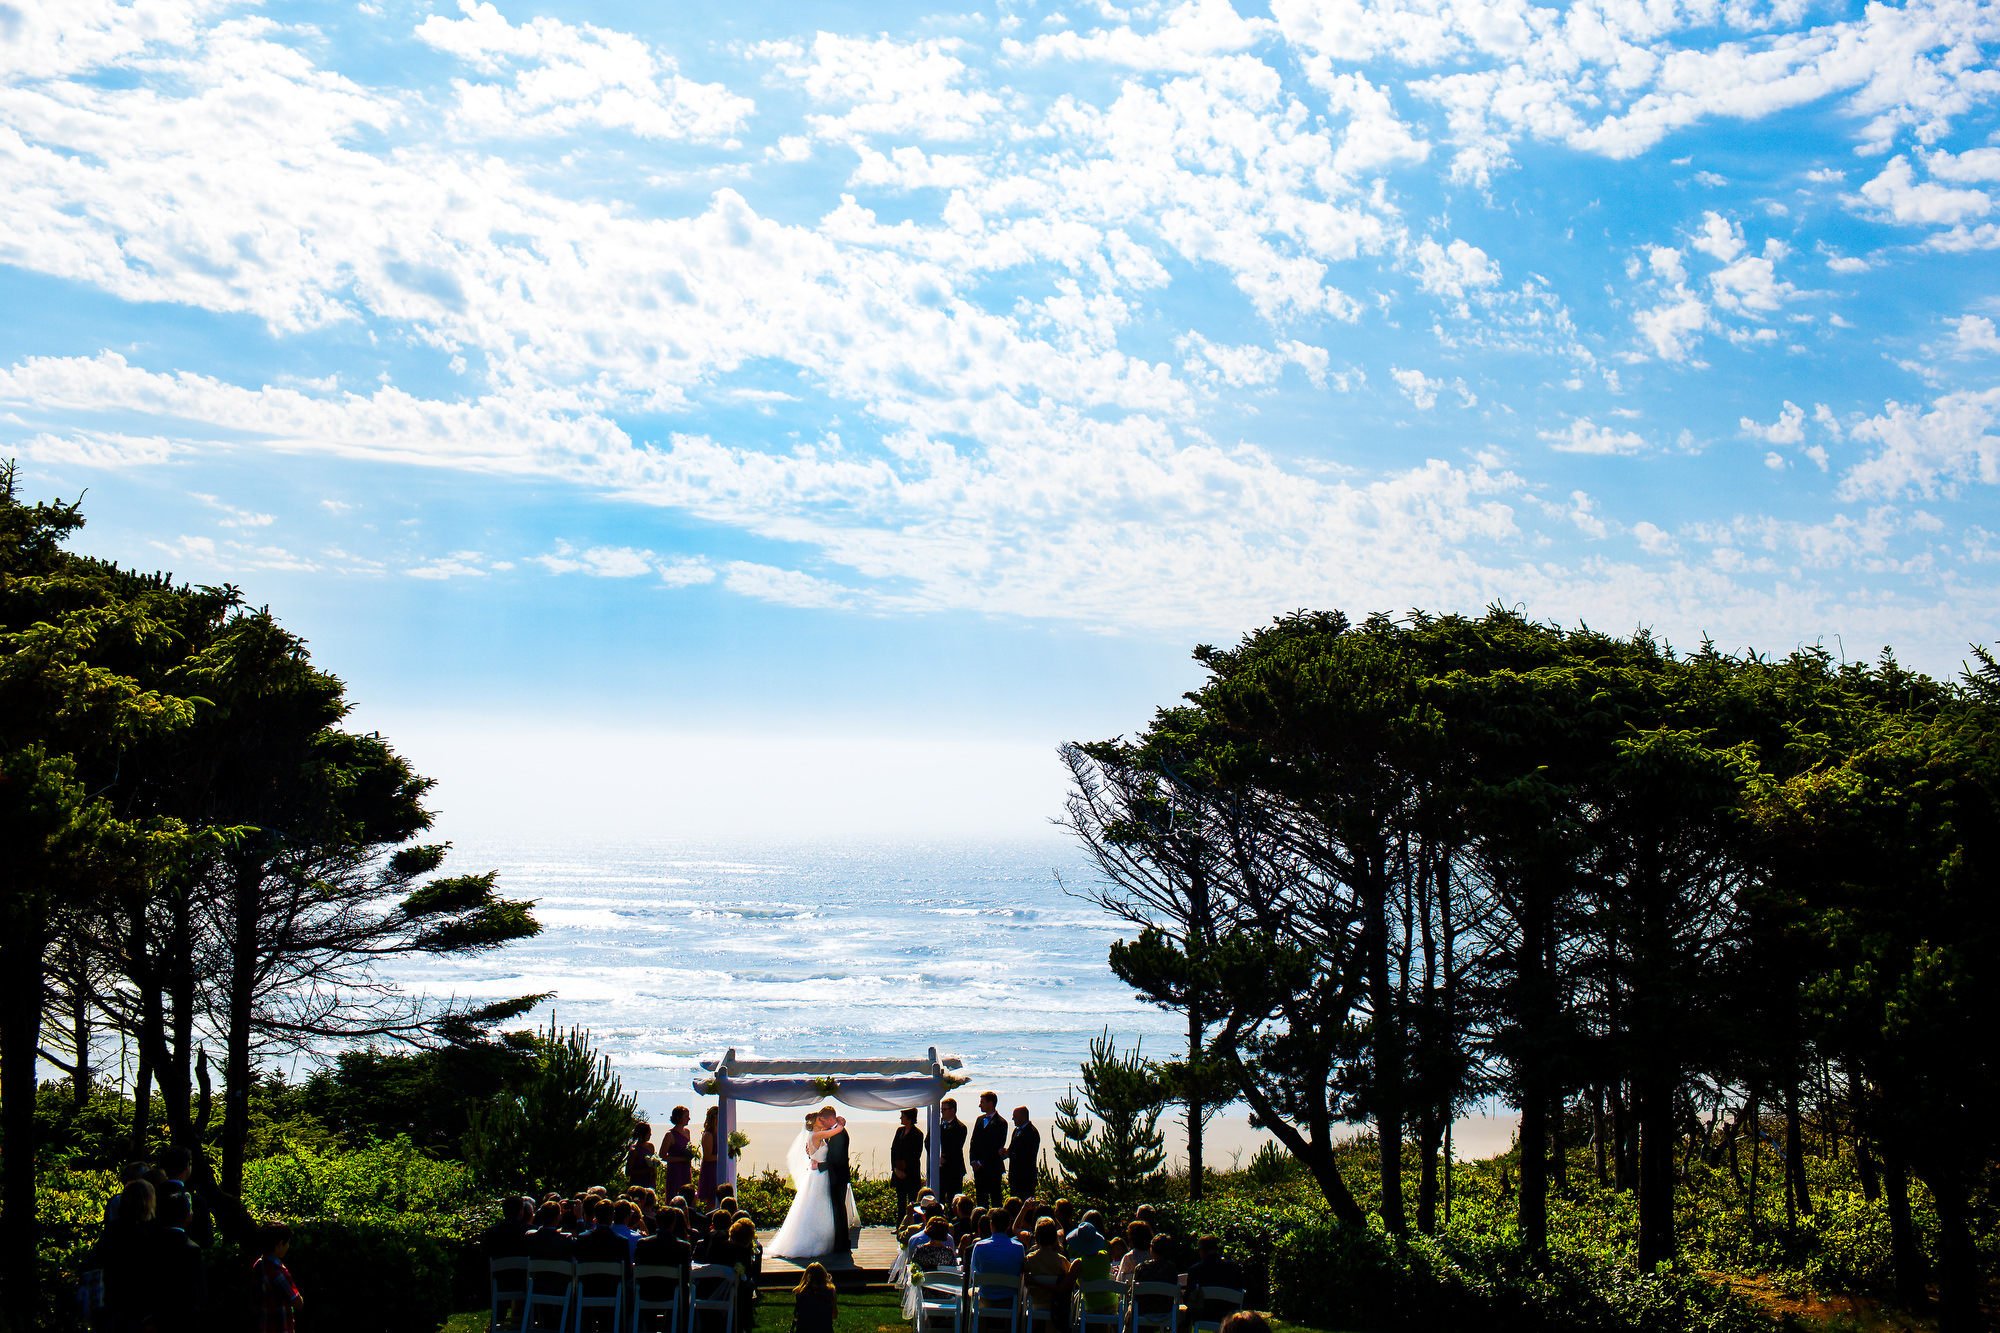 A beautiful beach wedding at the amazing Storm Crest Cellars in South Beach Oregon by Newport. Photographed by top destination wedding photographers, Daniel and Lindsay Stark of Stark Photography. (33)